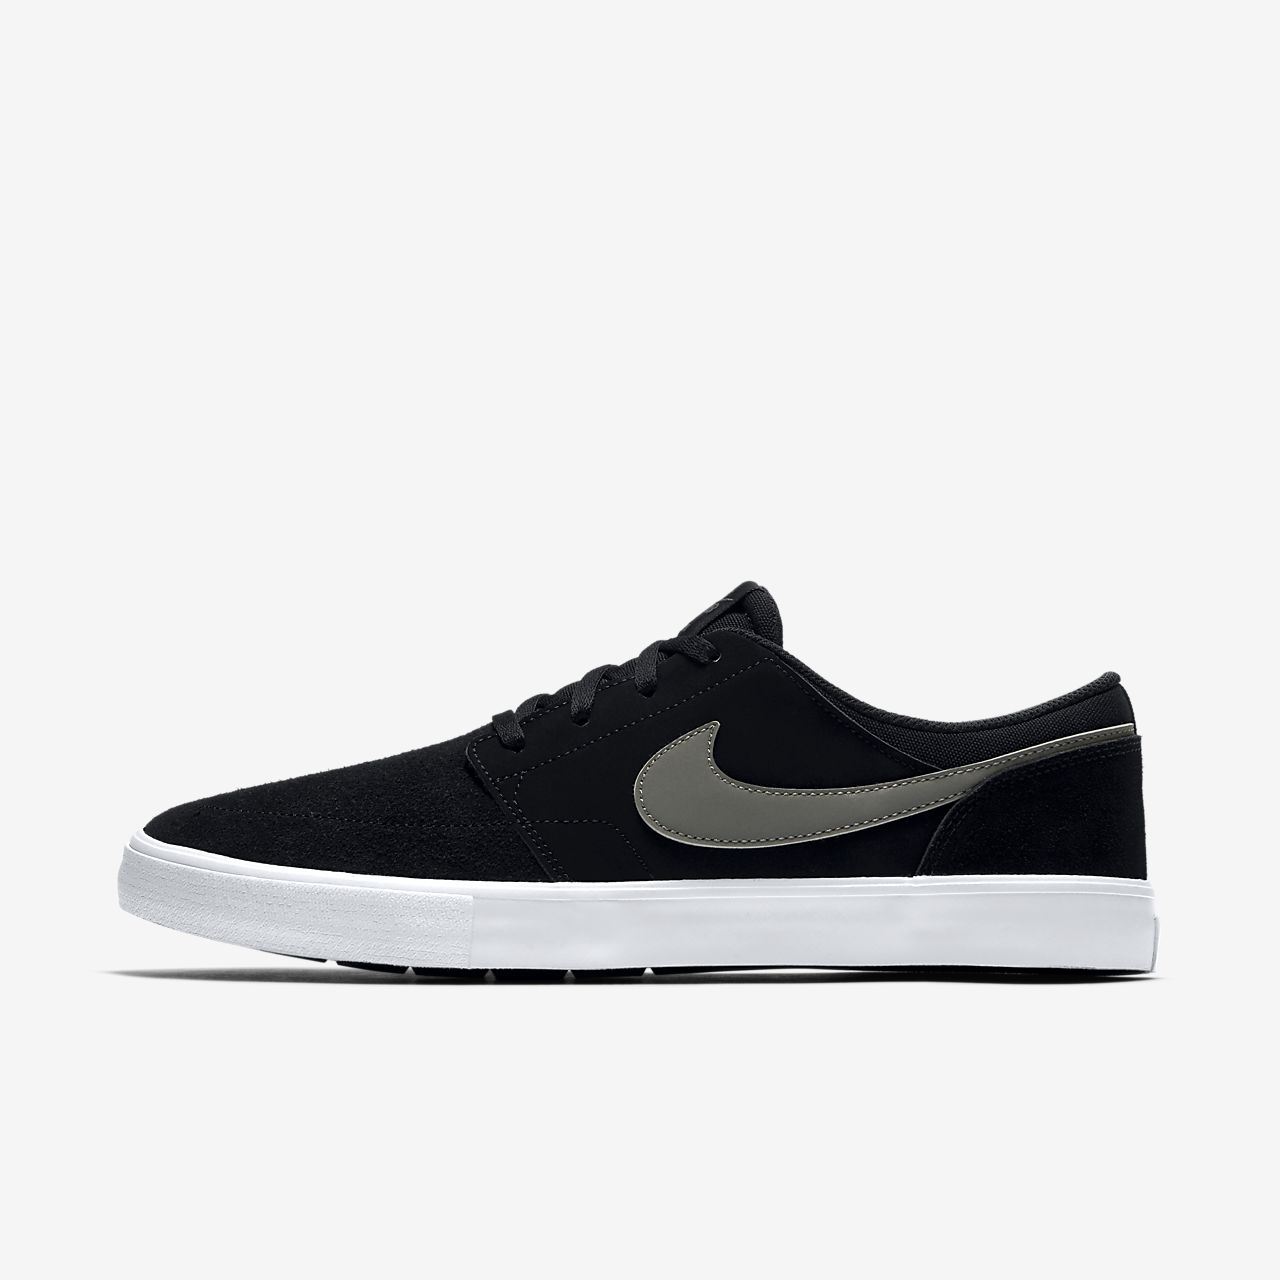 no sale tax best prices buy good Nike SB Solarsoft Portmore II Men's Skateboarding Shoe